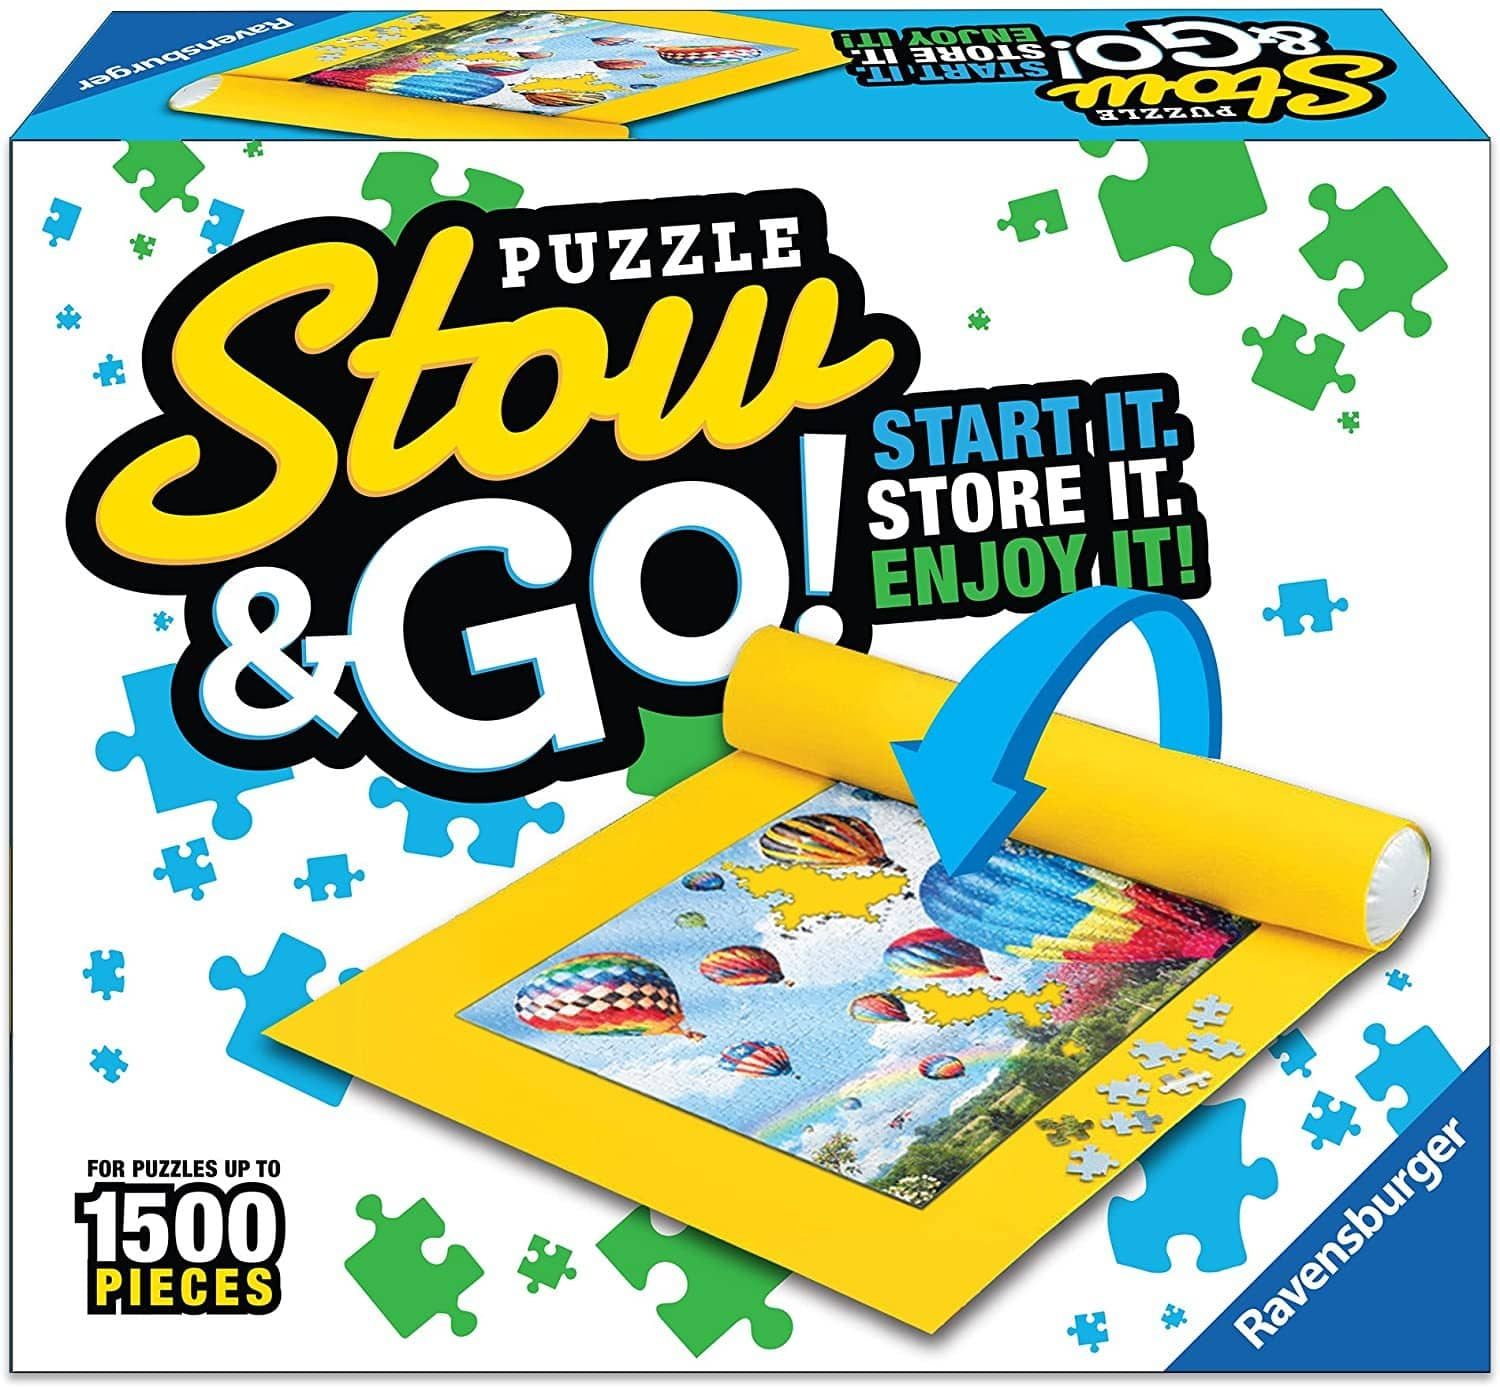 Ravensburger 17960 Puzzle Stow And Go, 1500 Pieces, 46 X 26 Inches-Kidding Around NYC